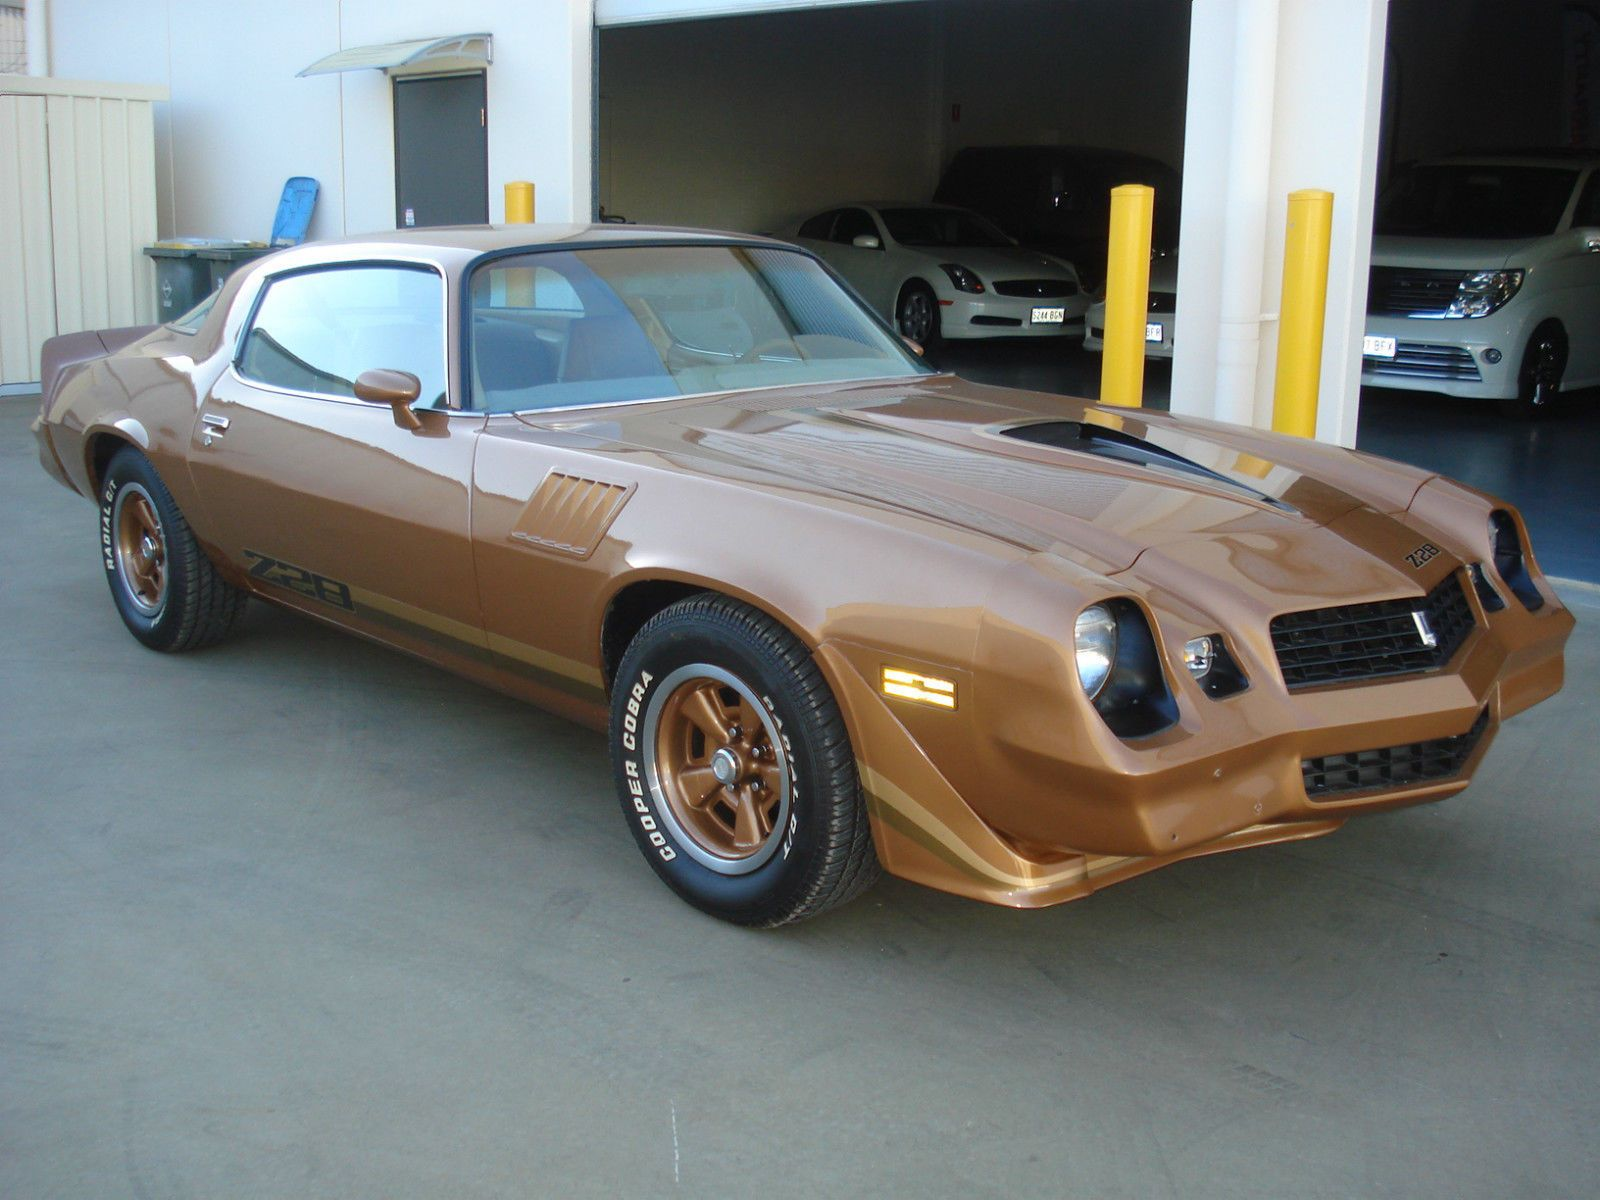 1979 Model Chevrolet Z28 Camaro .Recent LHD import . There